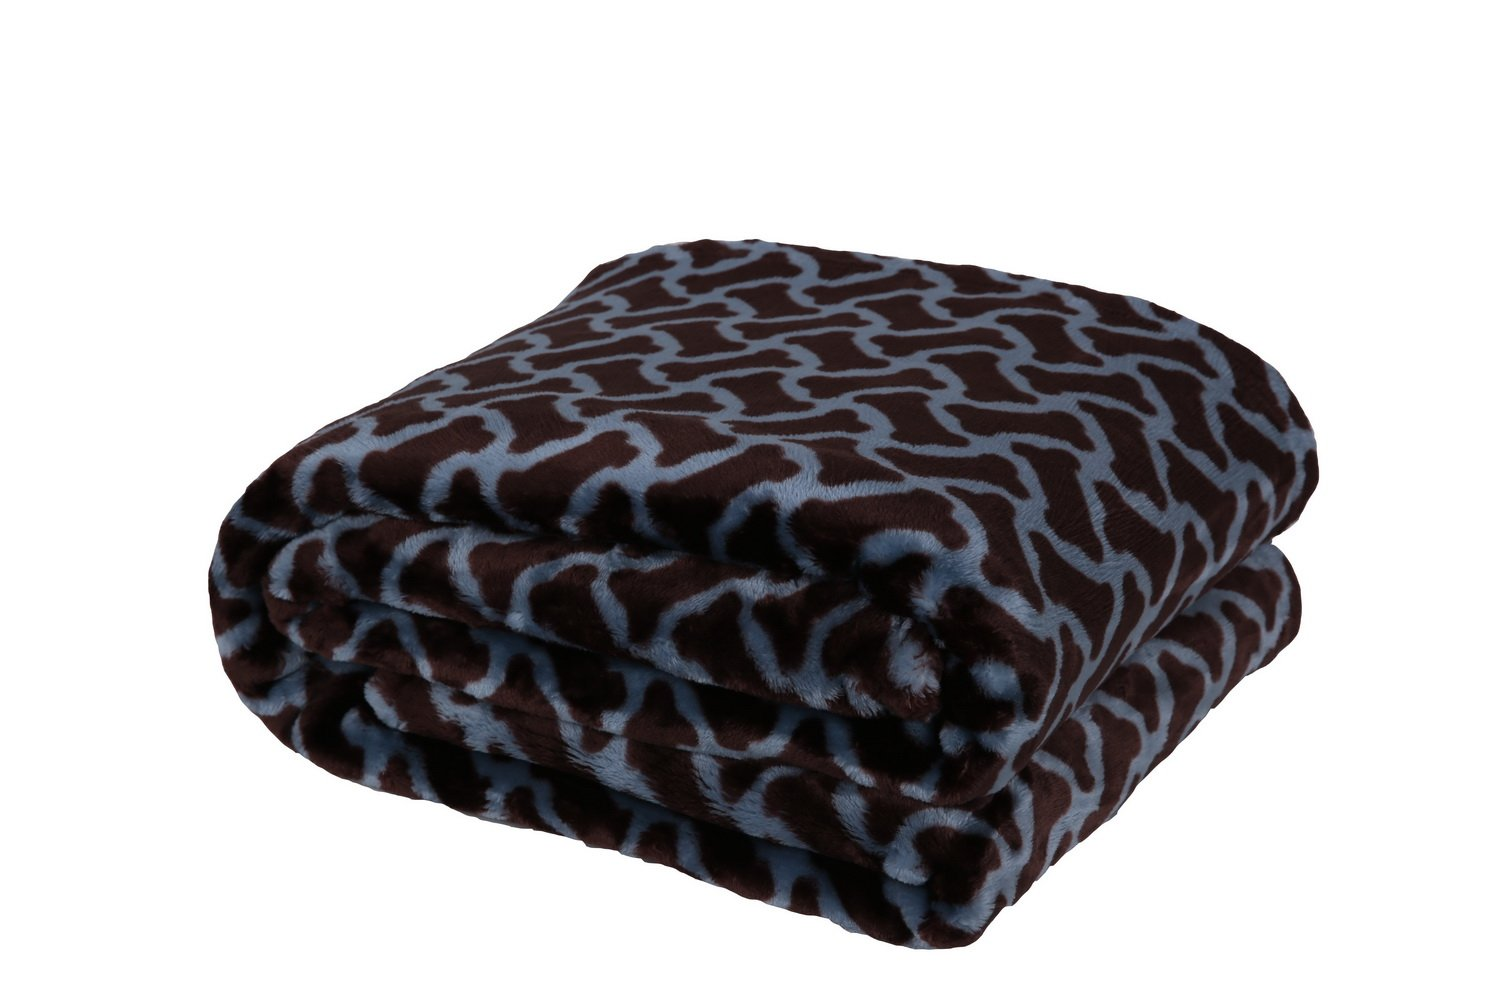 HappyCare Textiles 047393528933 Printed dog paw Flannel throw blanket, Coffee